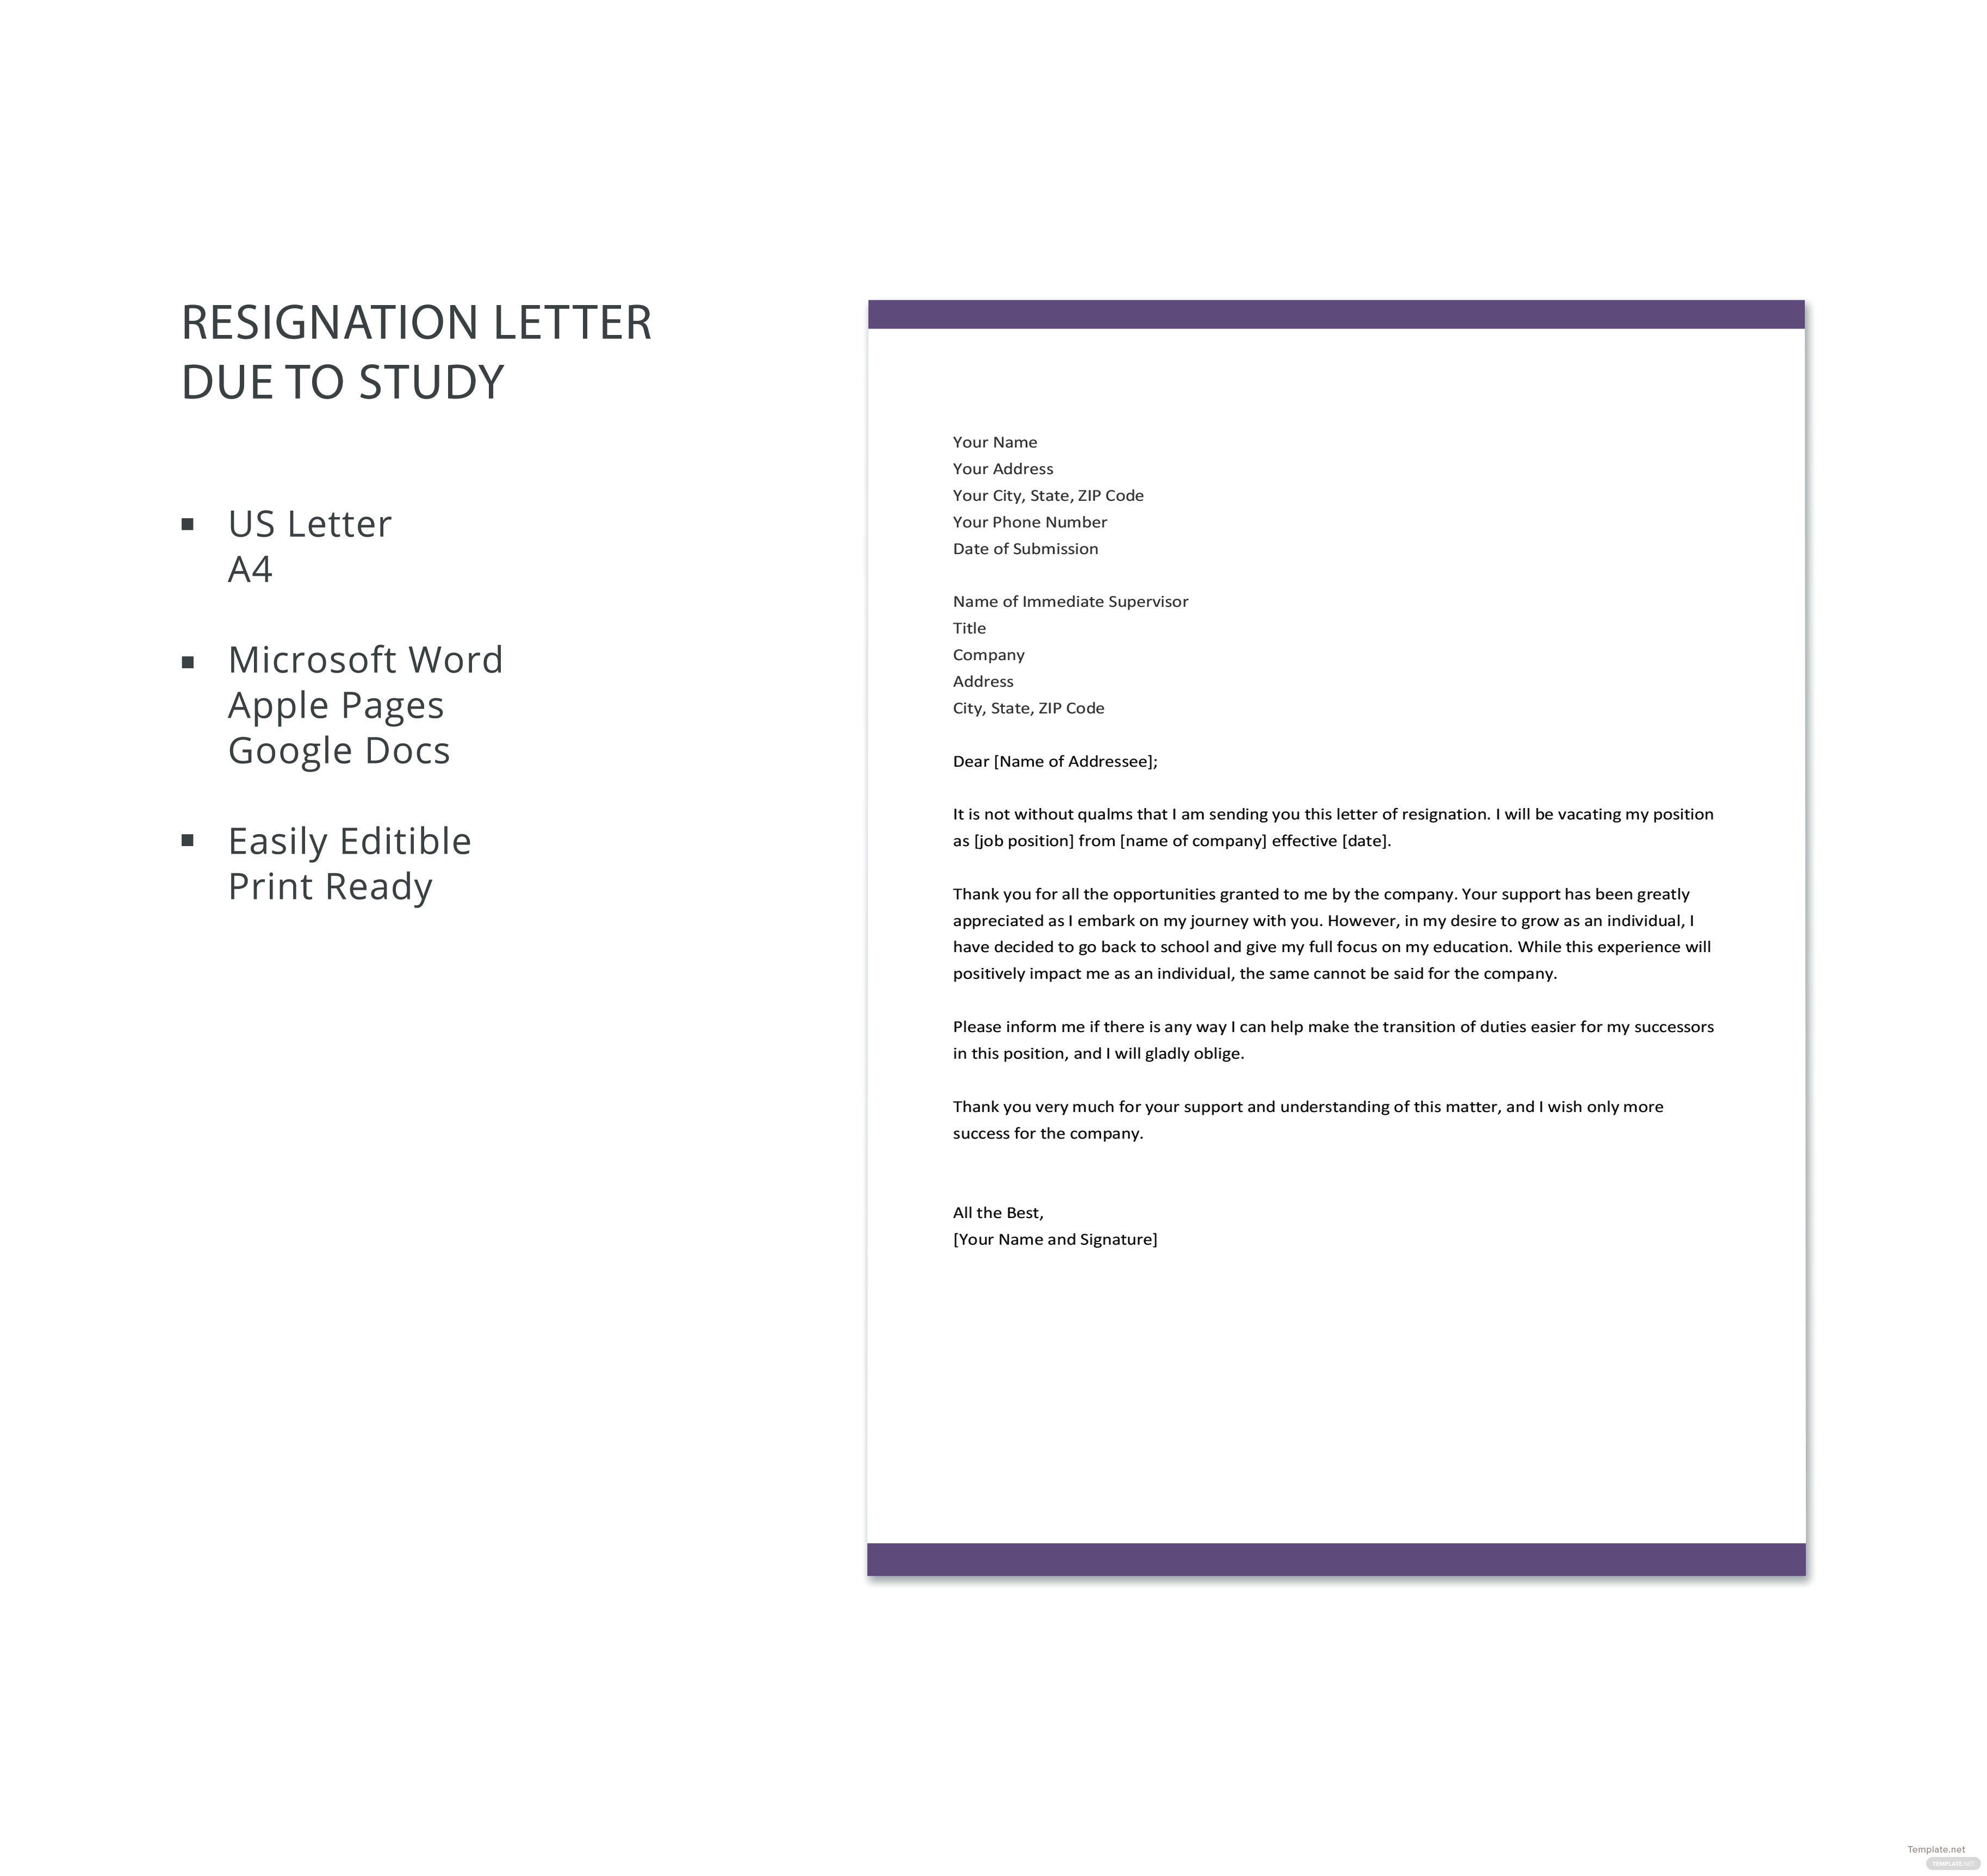 Free resignation letter template due to study in microsoft word free resignation letter template due to study expocarfo